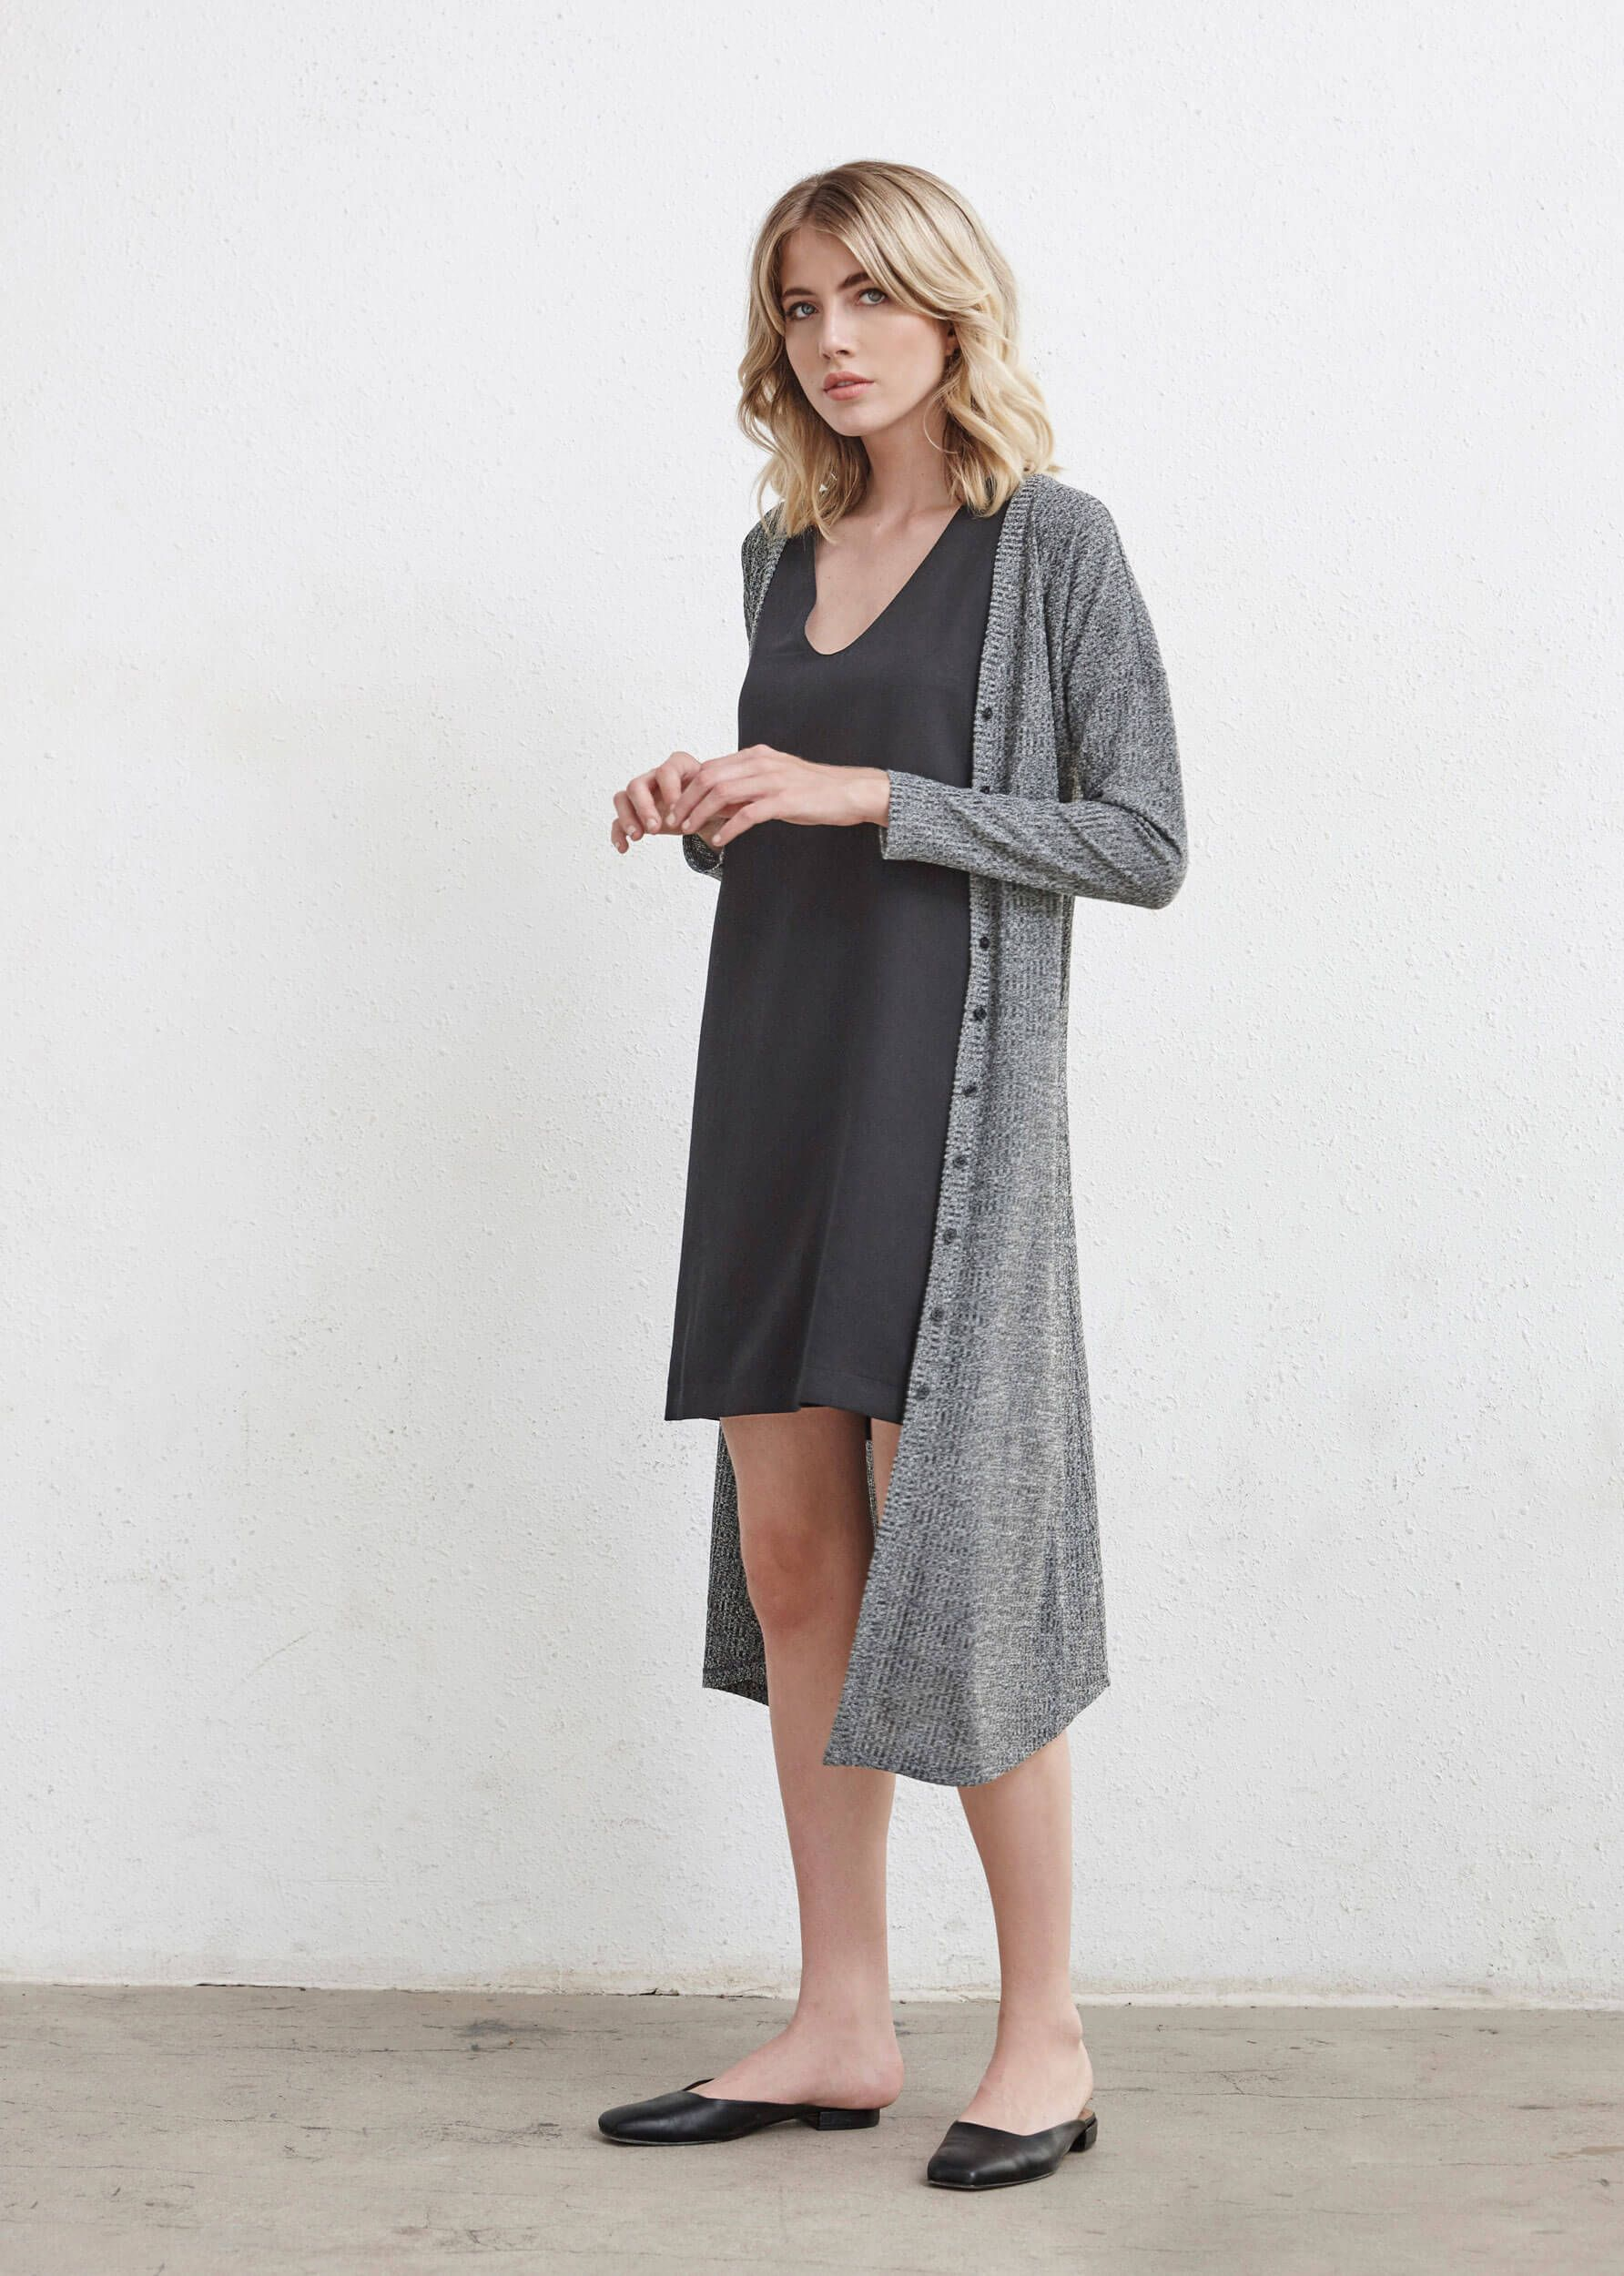 810bbba42830b3 The Long Cardigan + The Reversible Jumper Dress   5 pieces = 30 outfits    The Minimal Capsule #capsulewardrobe #womensfashion #ethicalfashion # sweaters # ...